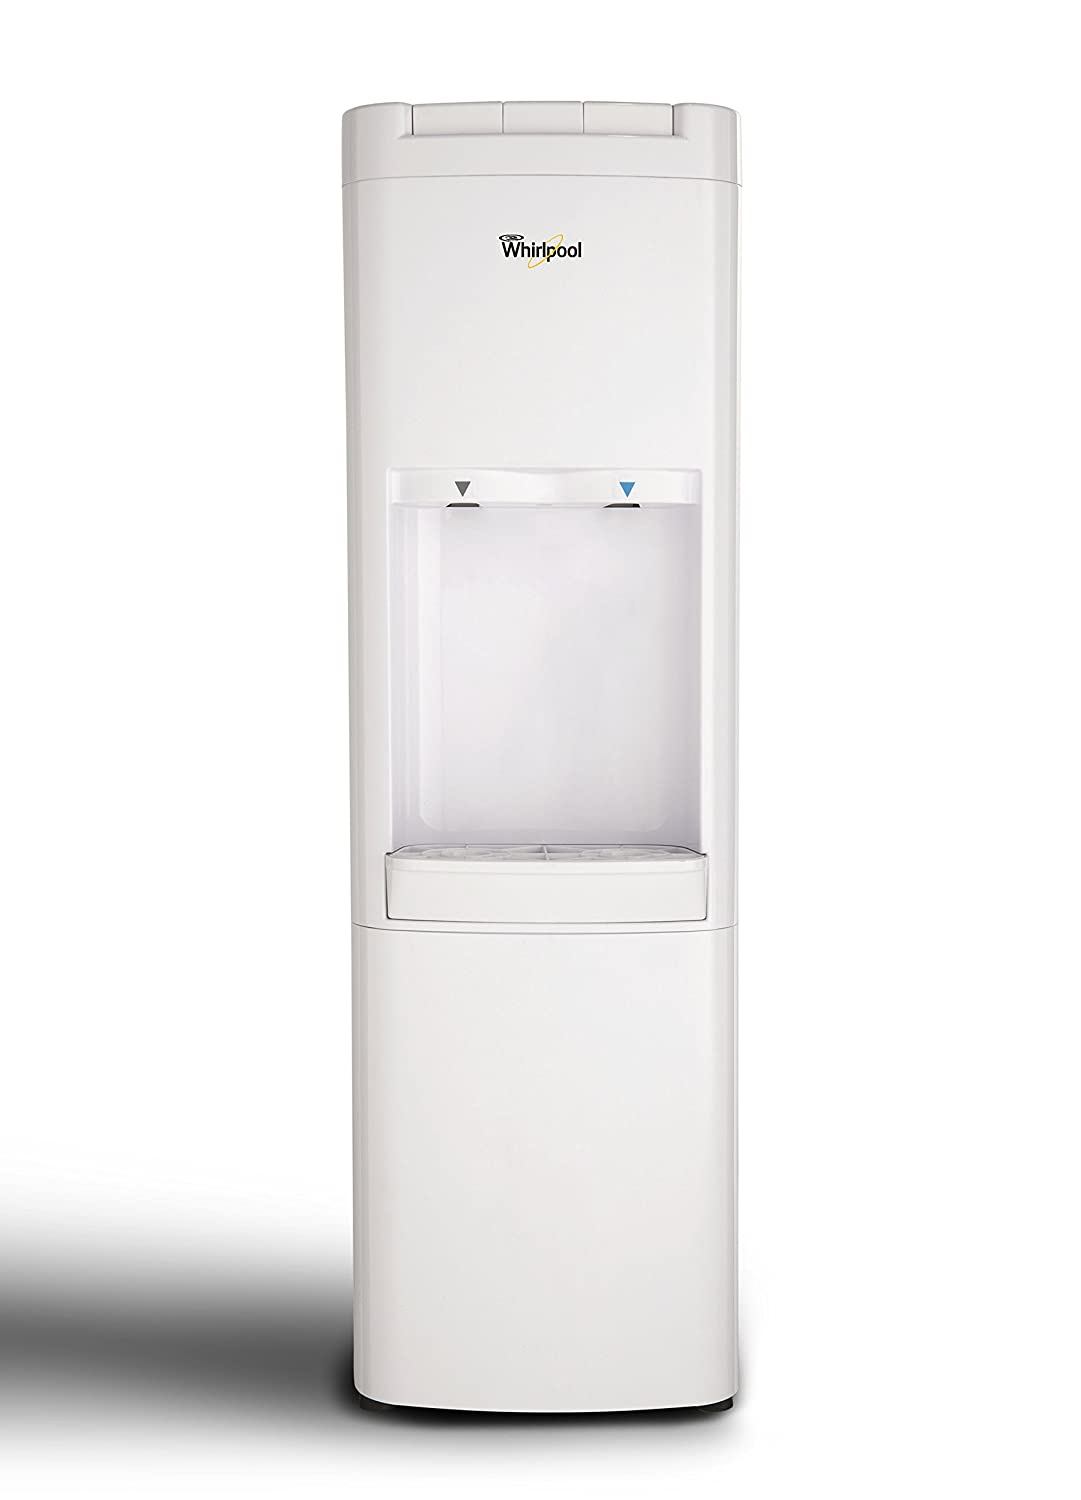 Whirlpool white ice products - Amazon Com Whirlpool Commercial Water Cooler Ice Chilled Water White Water Dispenser Home Improvement